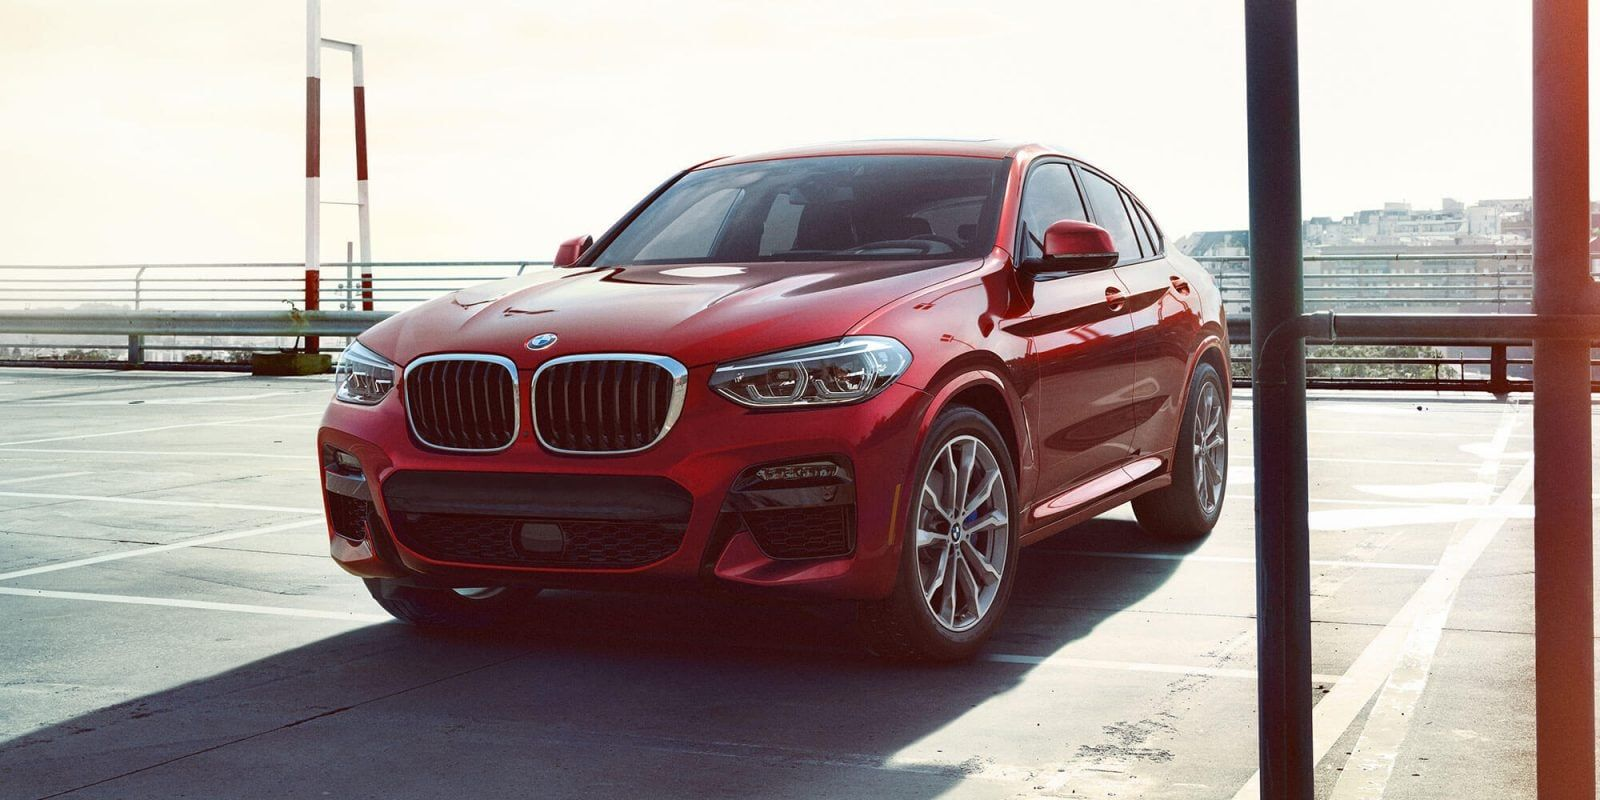 BMW X4 xDrive30i Fuel Injection BMW USA in 2020 Bmw